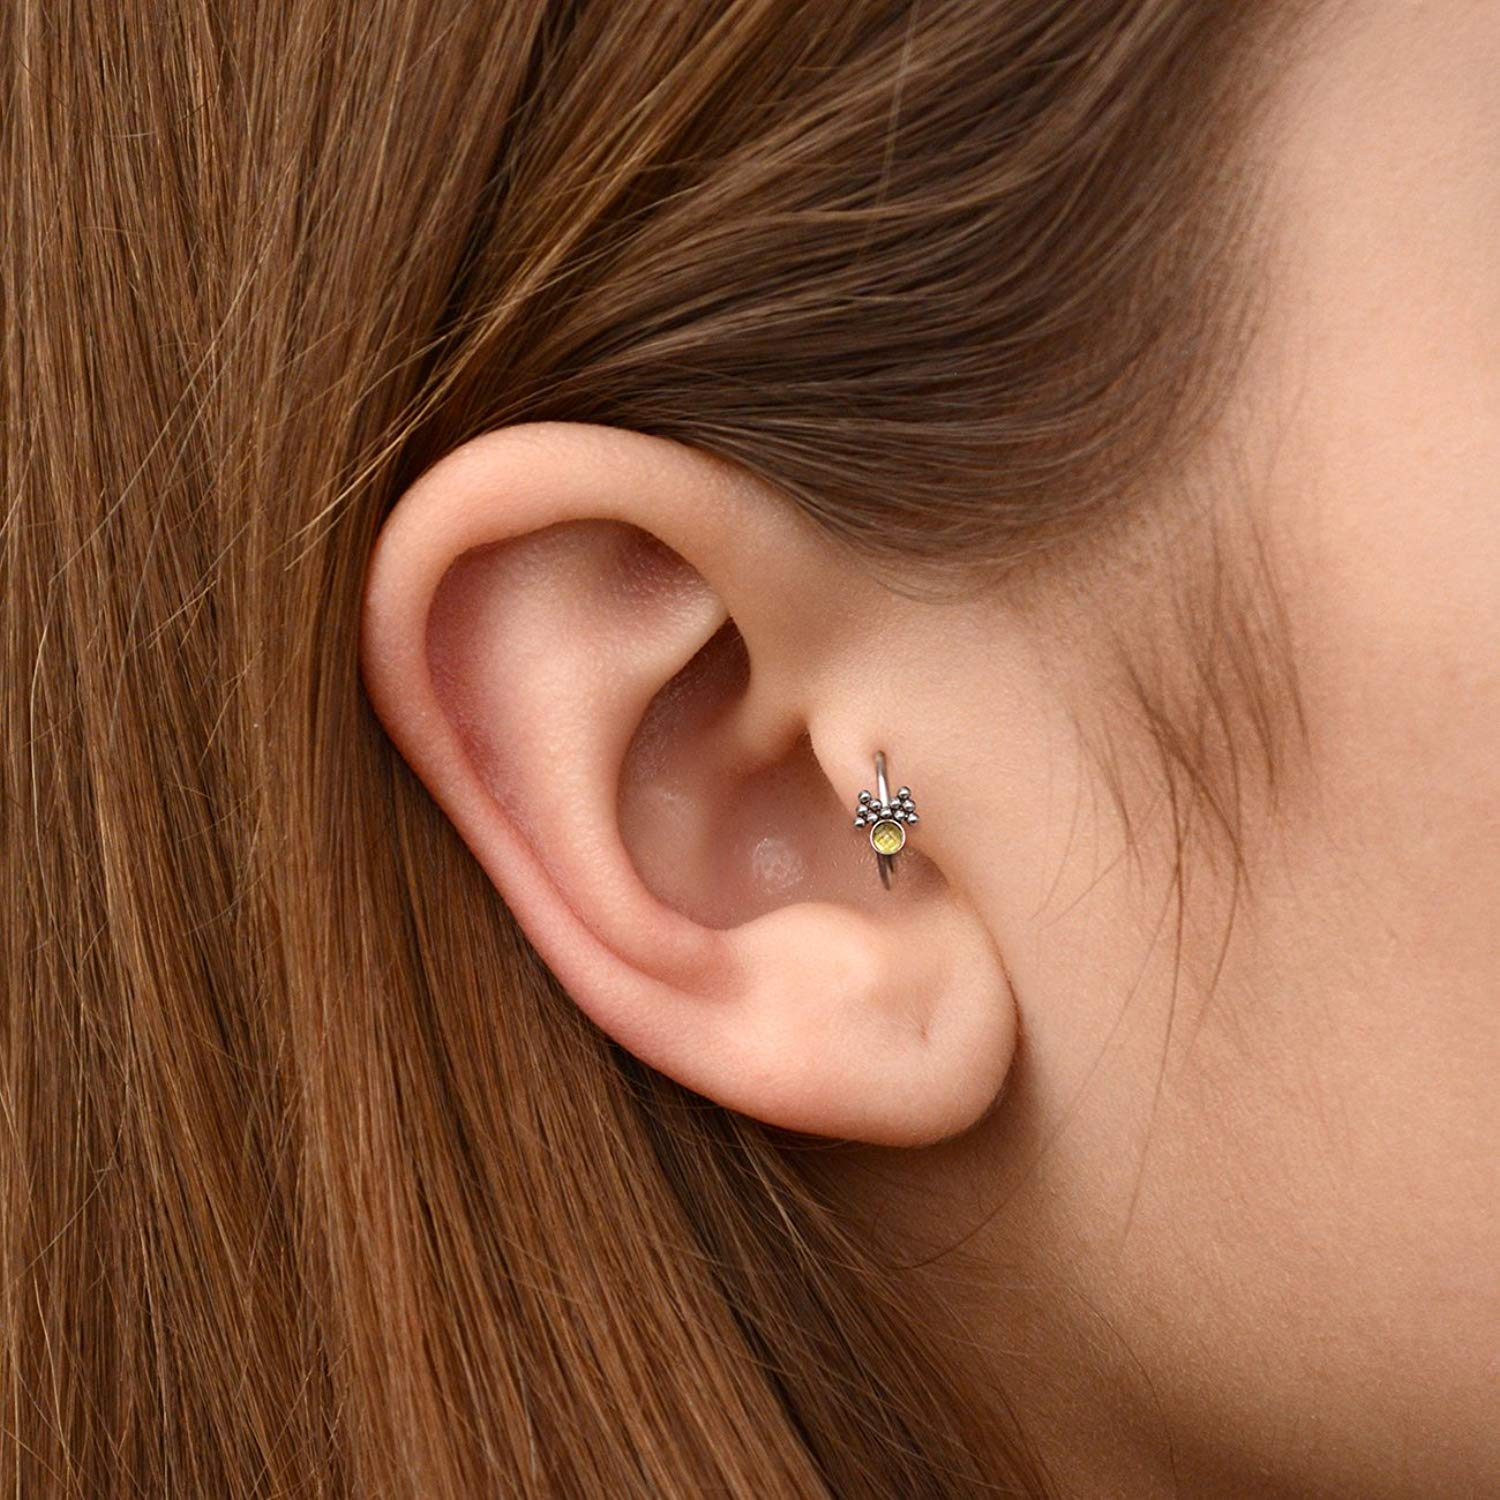 Cheap Tragus Hoop Jewelry Find Tragus Hoop Jewelry Deals On Line